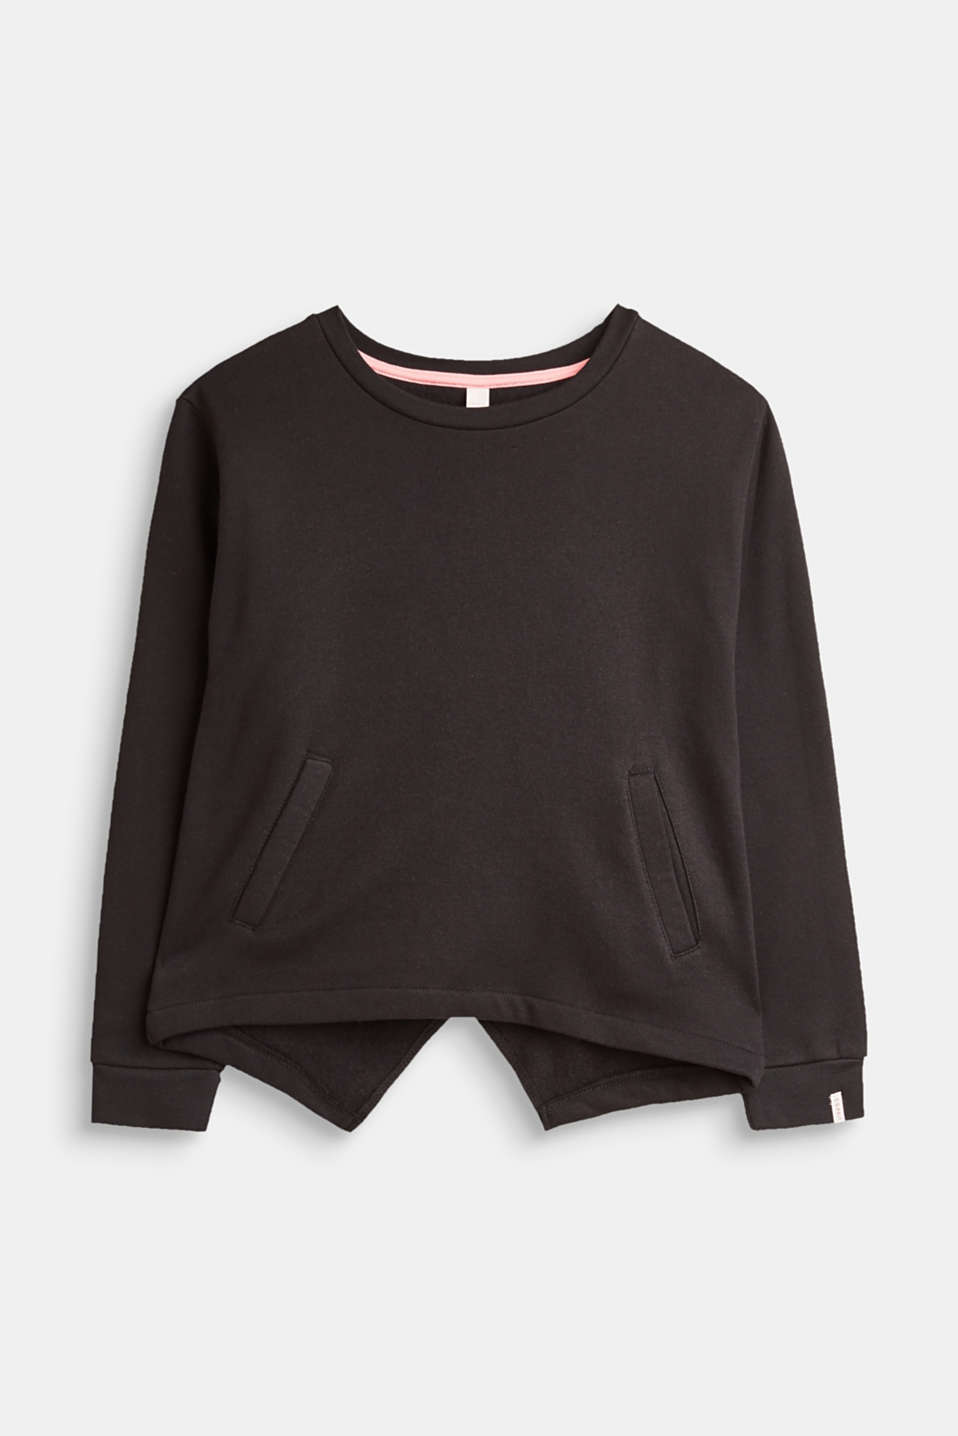 Esprit - Sweatshirt with layers at the back, 100% cotton